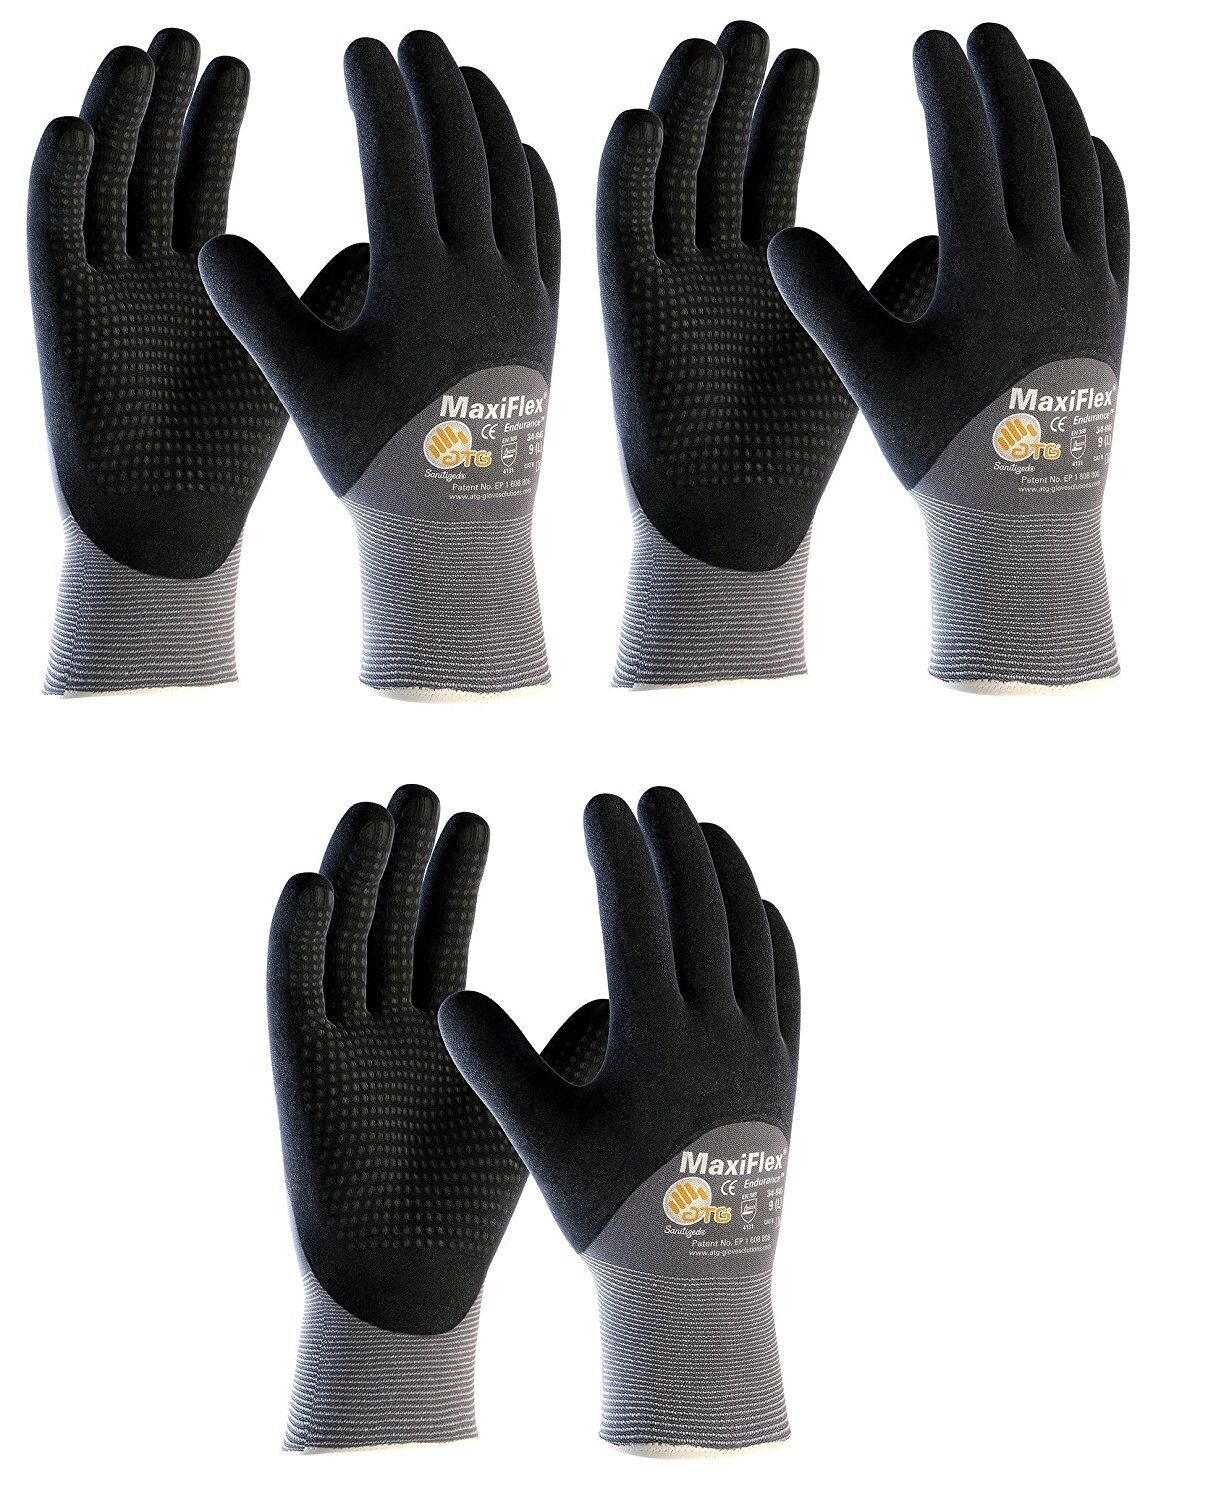 Read Description MaxiFlex Elite 34-274 Nitrile Foam Palm Coated Work gloves